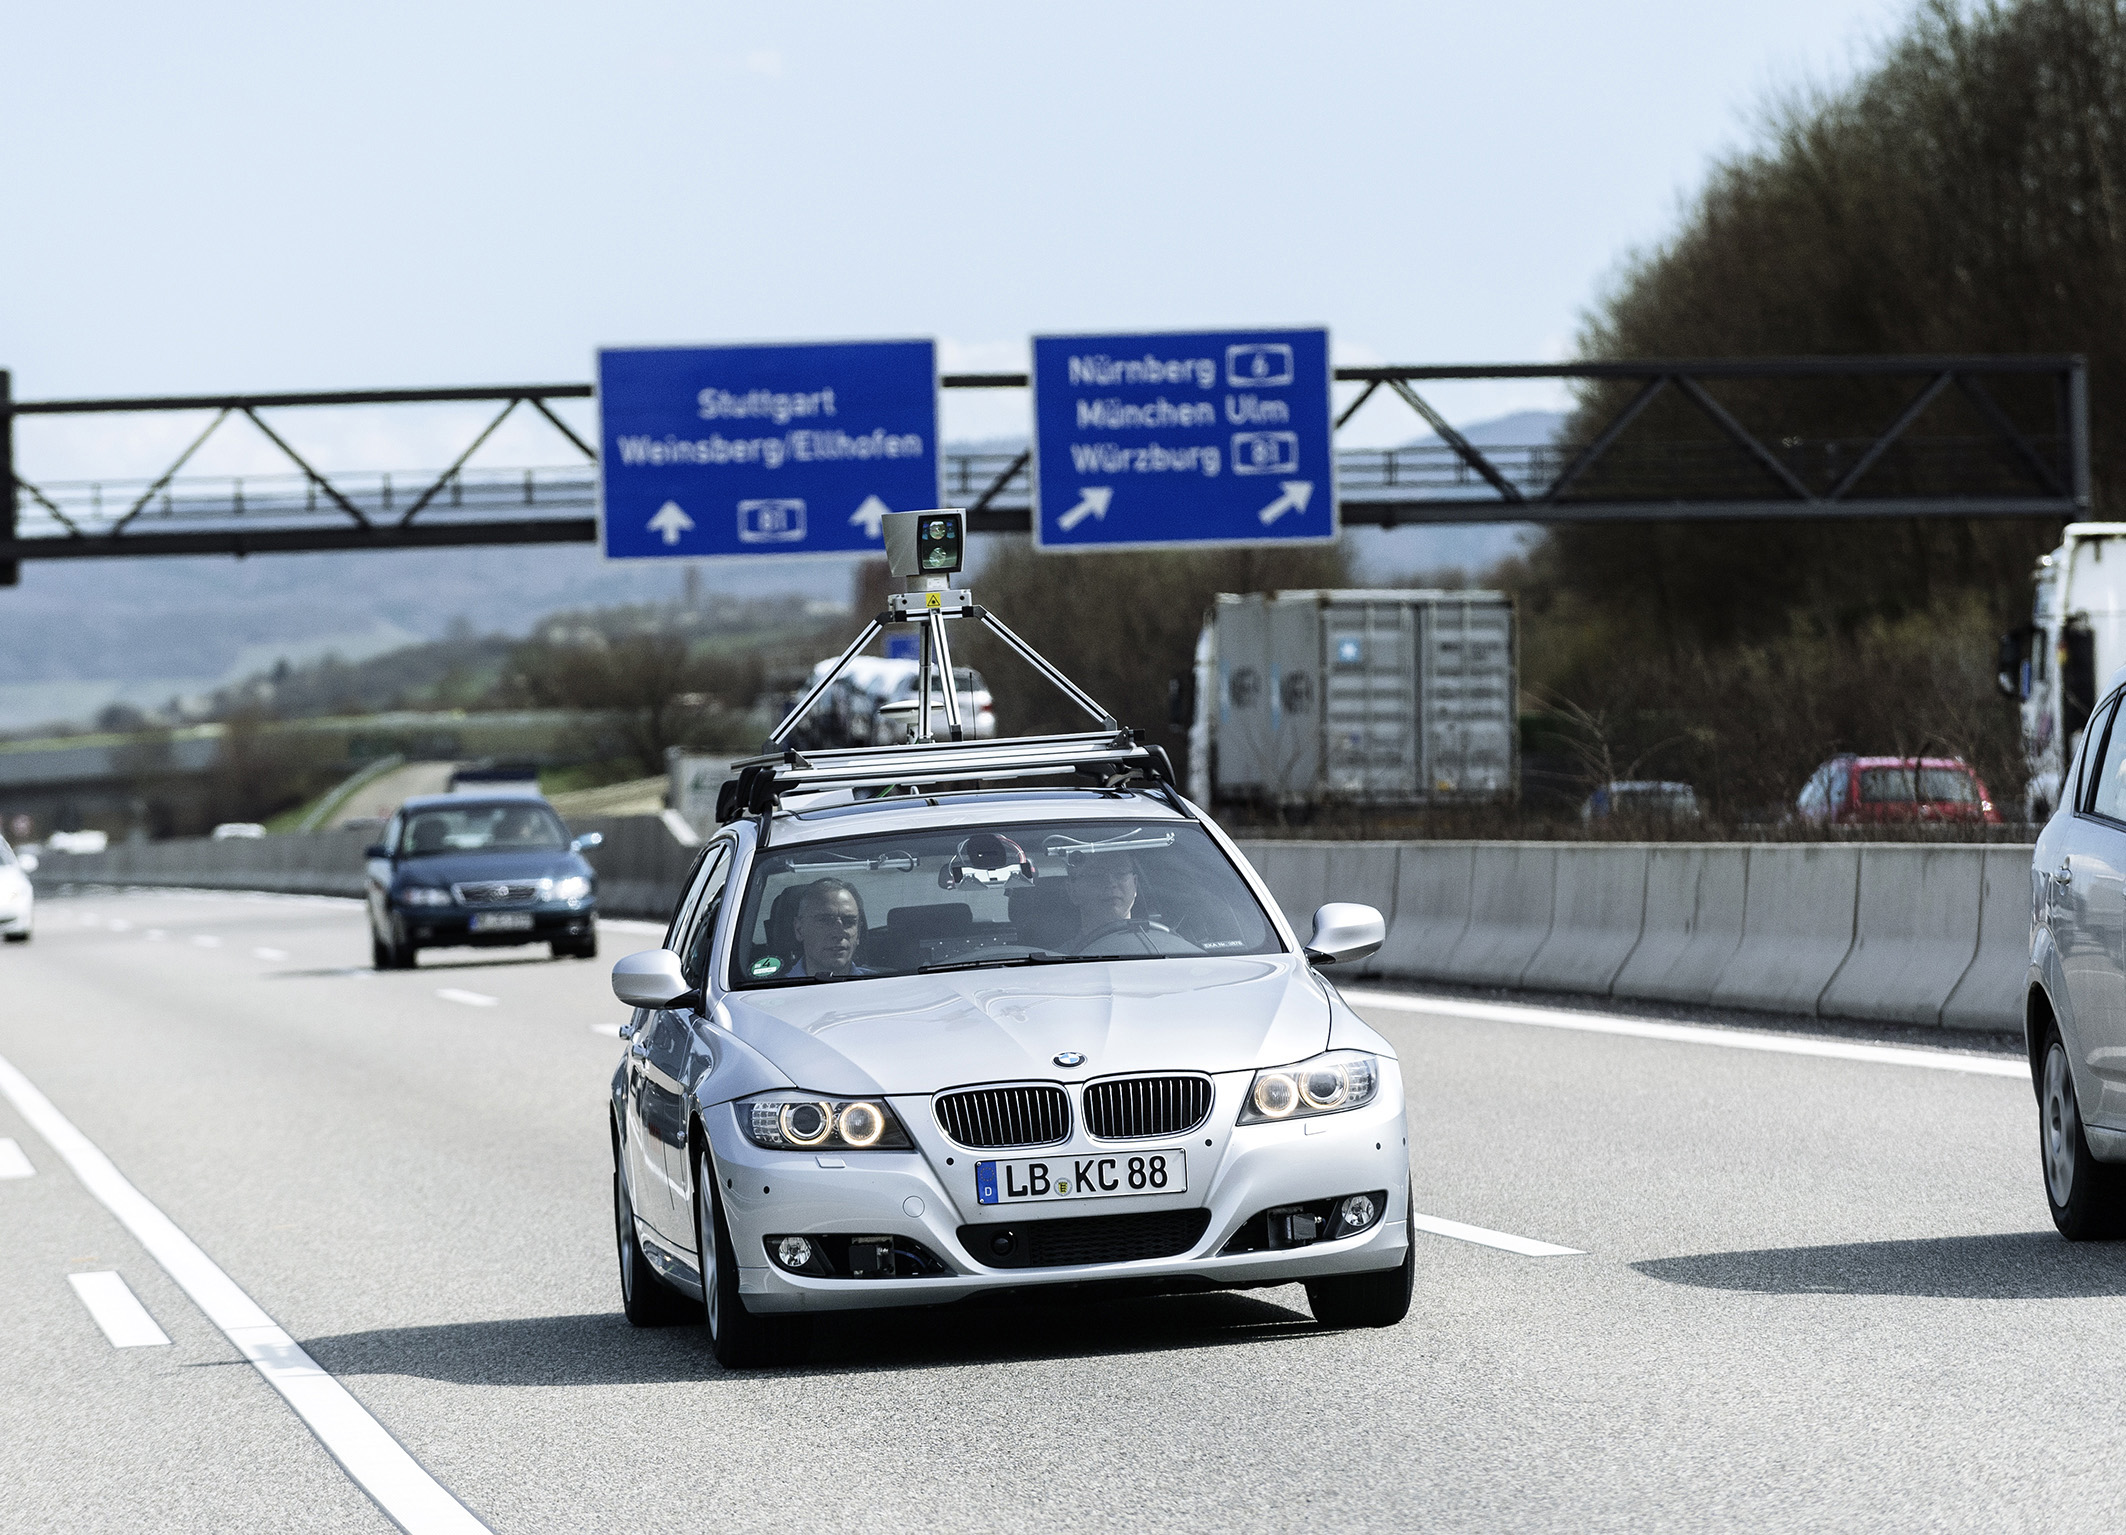 Germany Plans Autonomous Car Test Program On High-Speed Autobahn